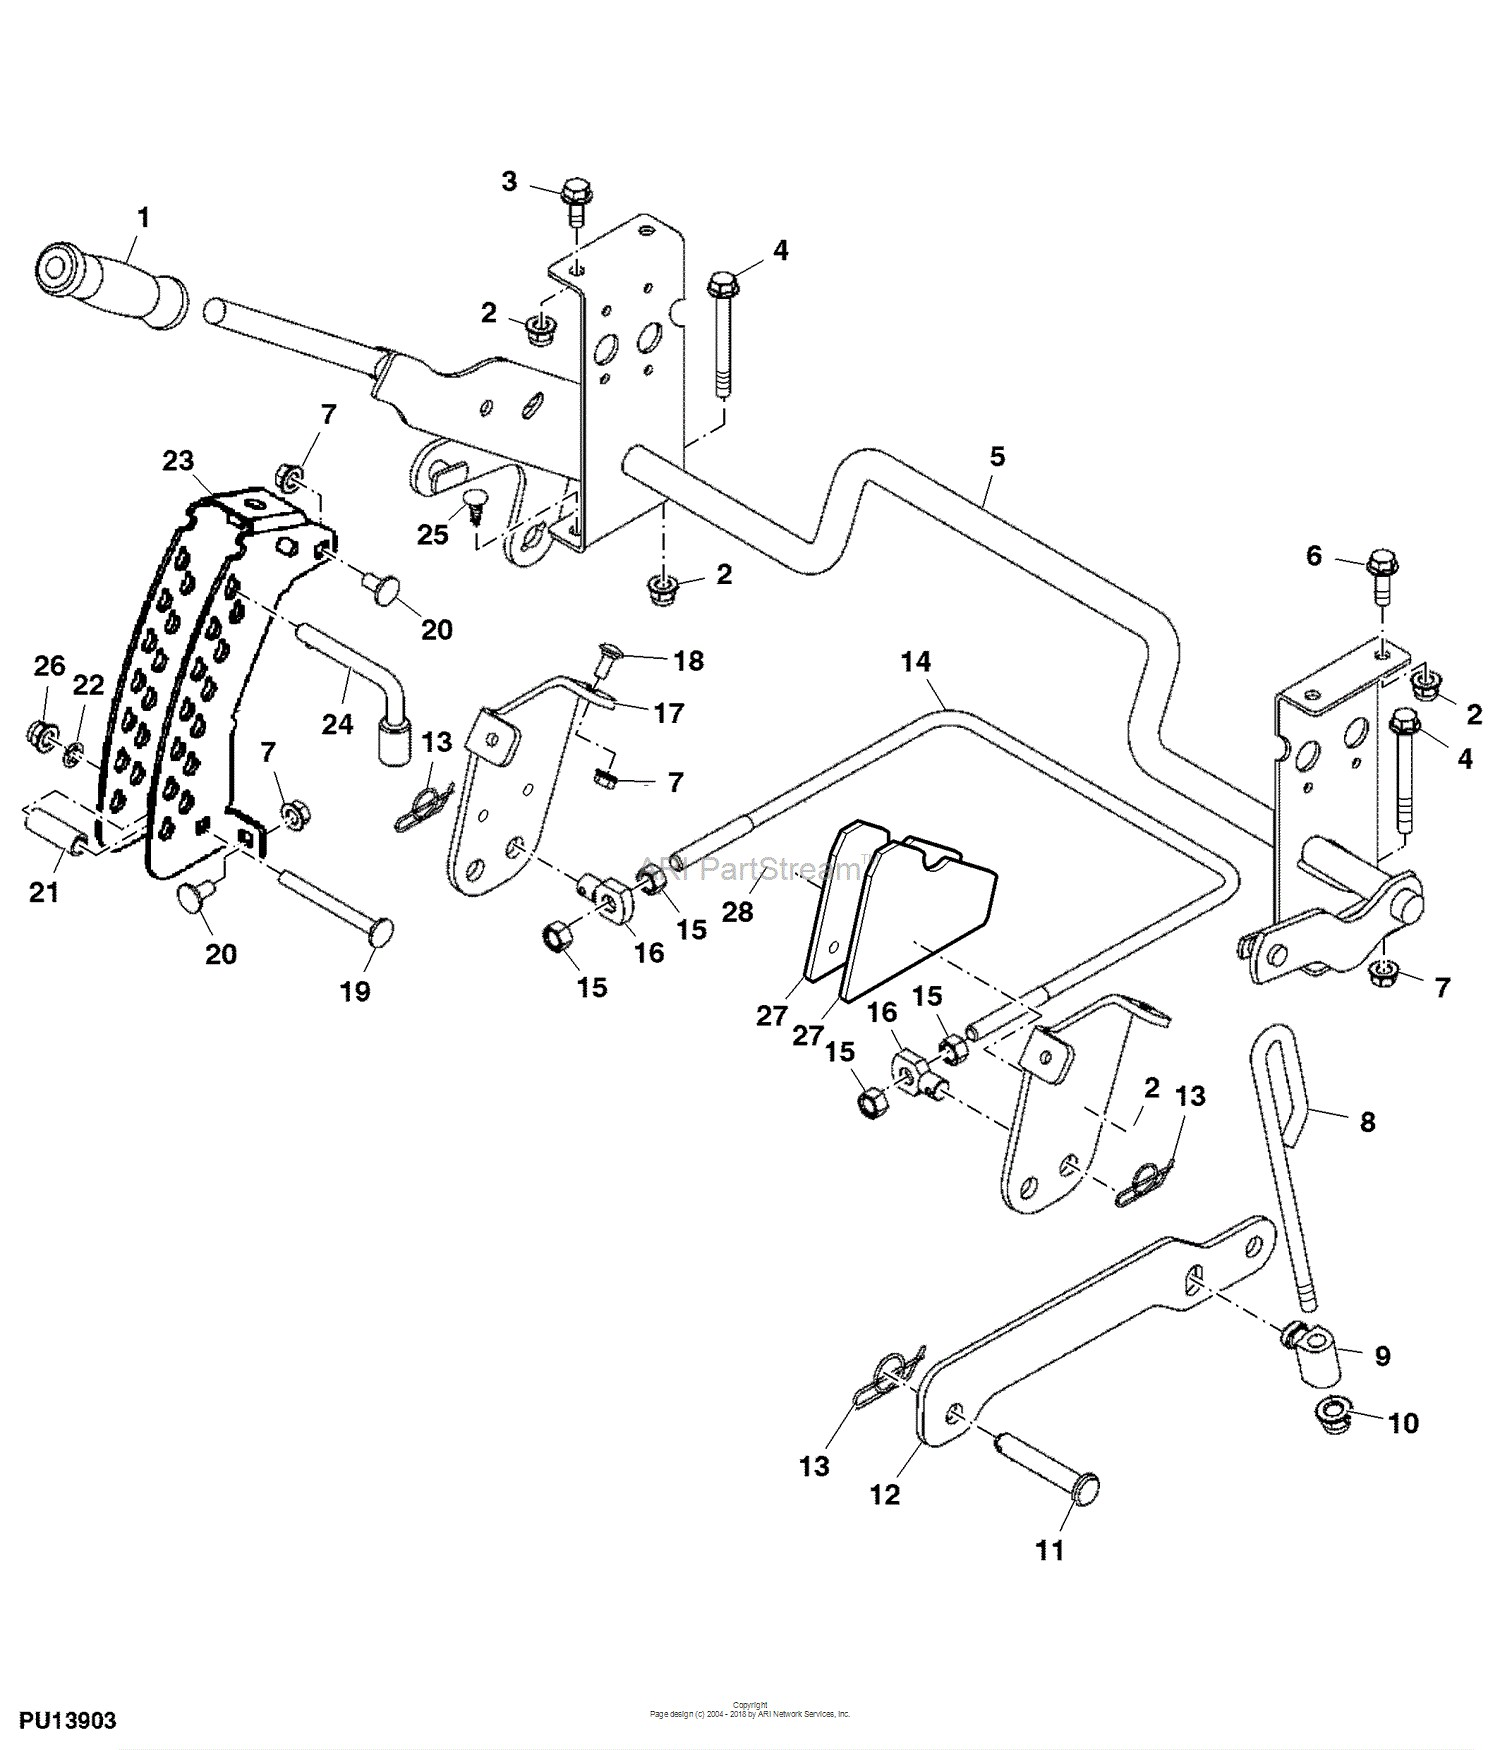 hight resolution of wiringdiagramjdz425 l118 wiring diagram automotive block john deere z425 wiring diagram john deere